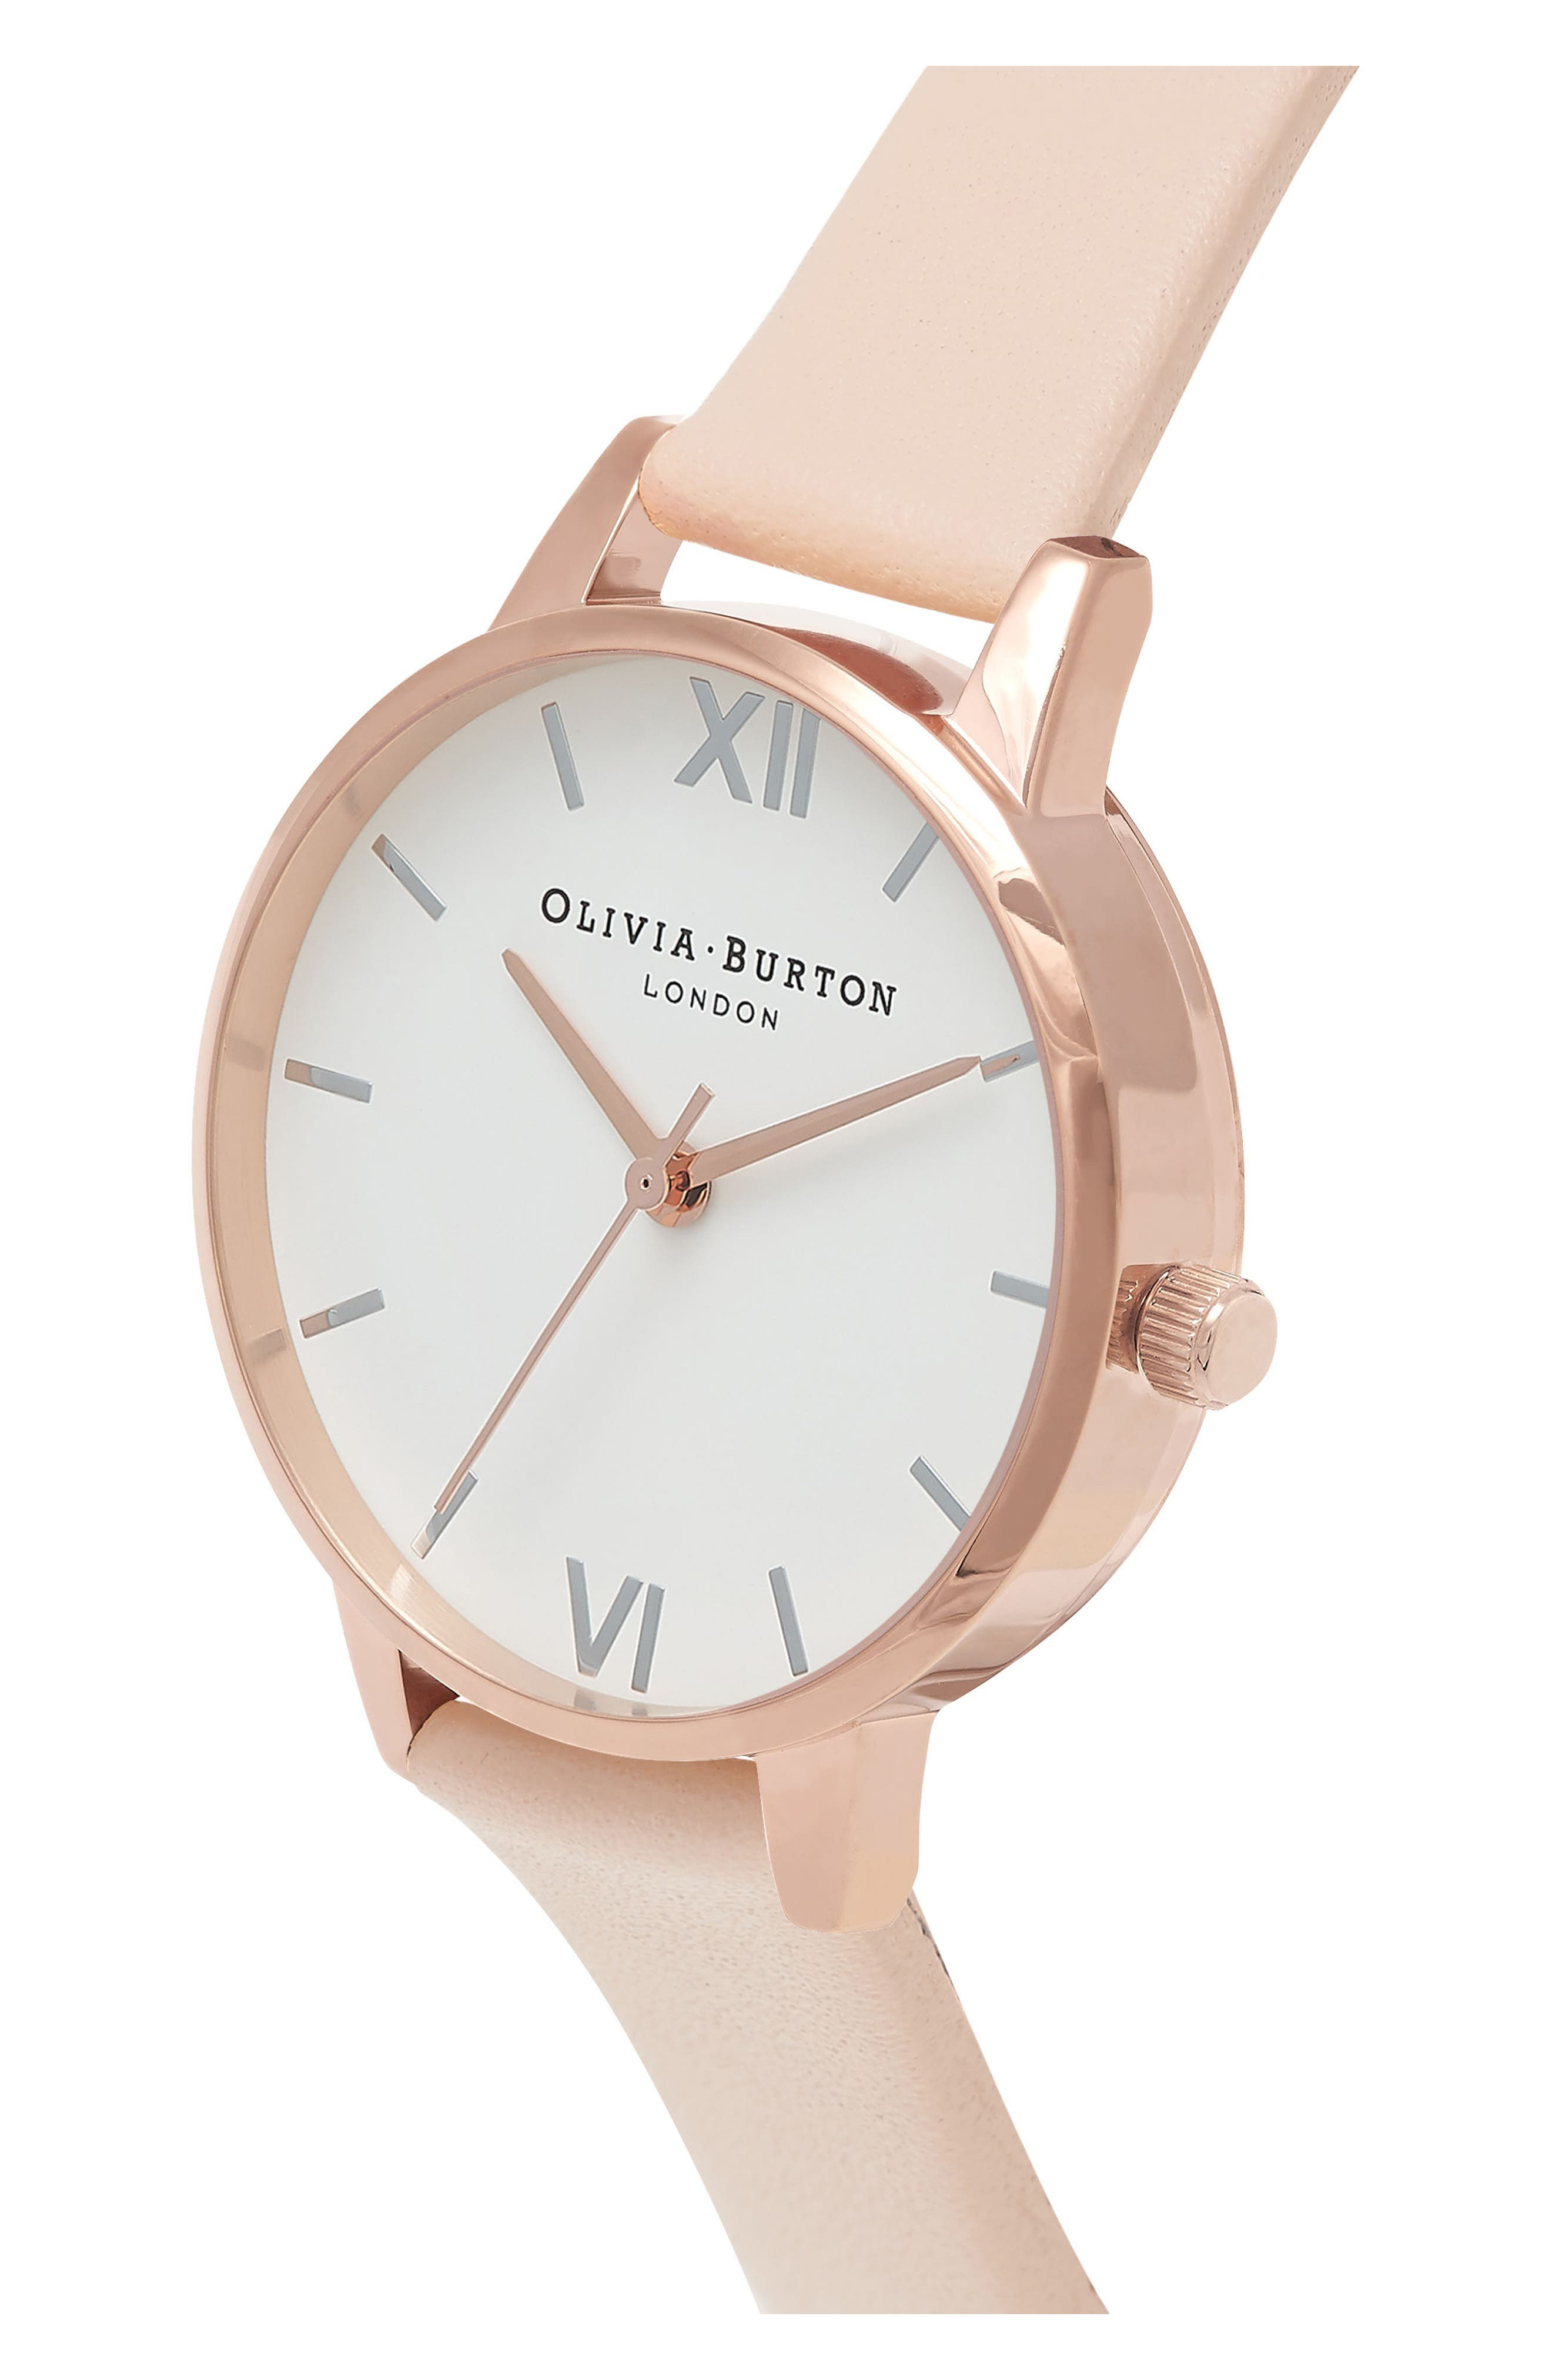 OLIVIA BURTON,                             Midi Dial Leather Strap Watch, 30mm,                             Alternate thumbnail 3, color,                             NUDE PEACH/ WHITE/ ROSE GOLD